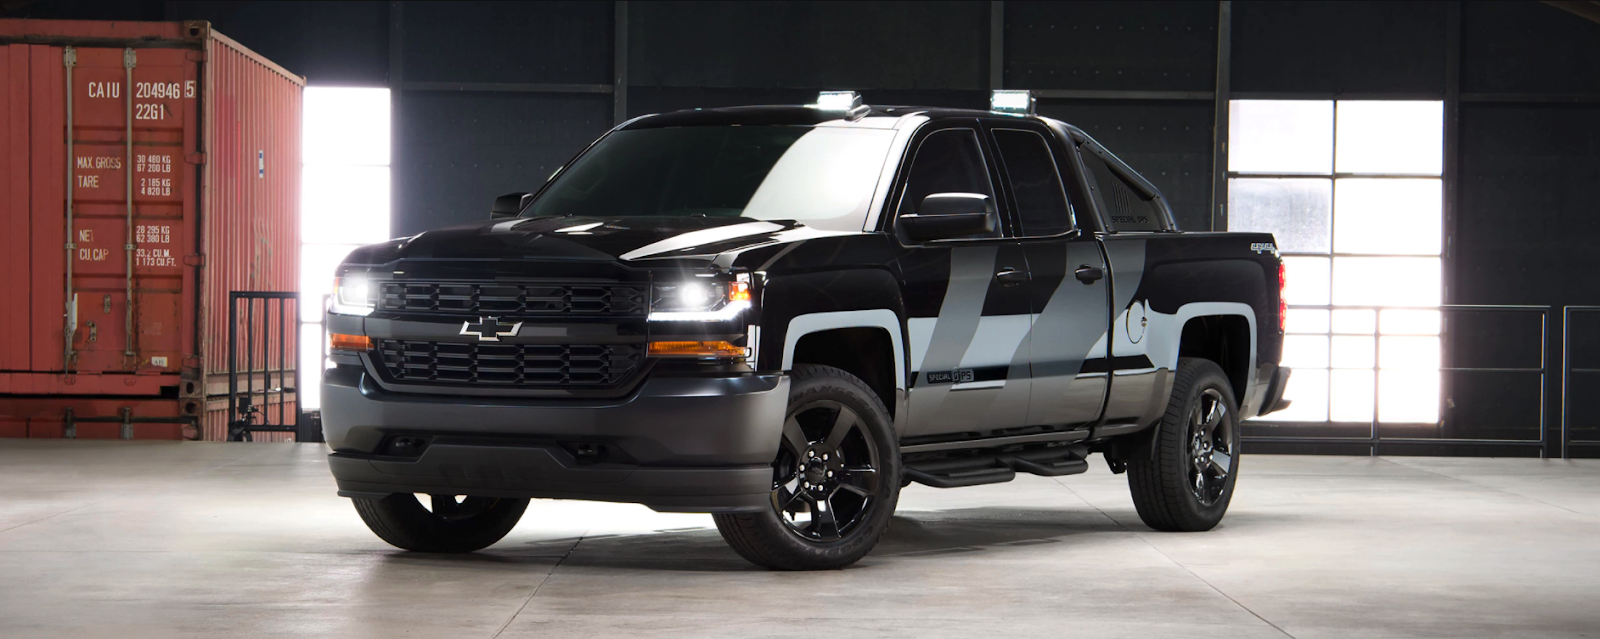 Chevrolet Special Edition Trucks >> 2017 Chevy Silverado Special Edition Breakdown Landers